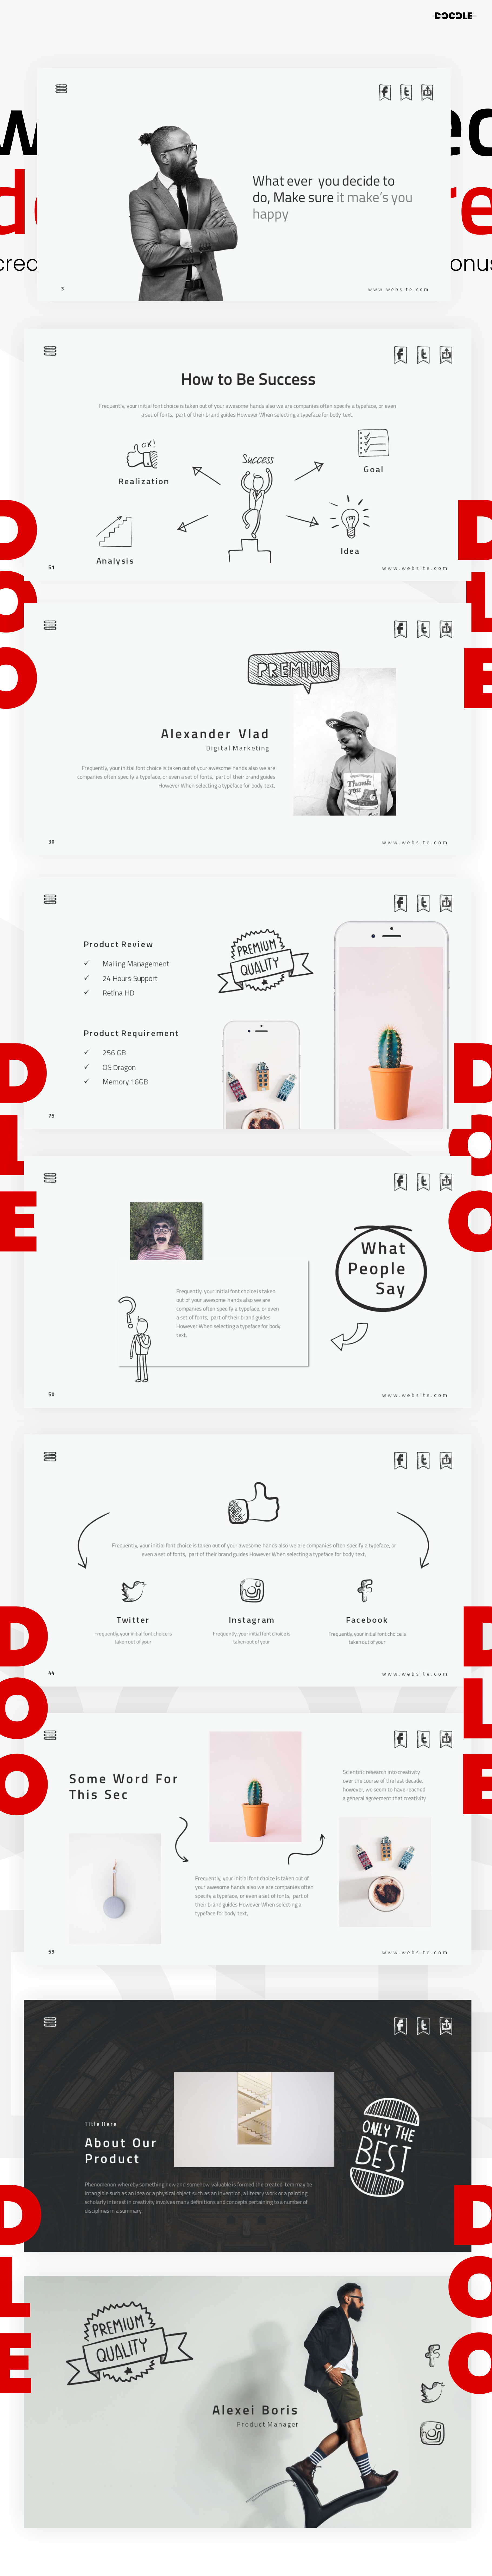 Doodles PowerPoint Template example image 13